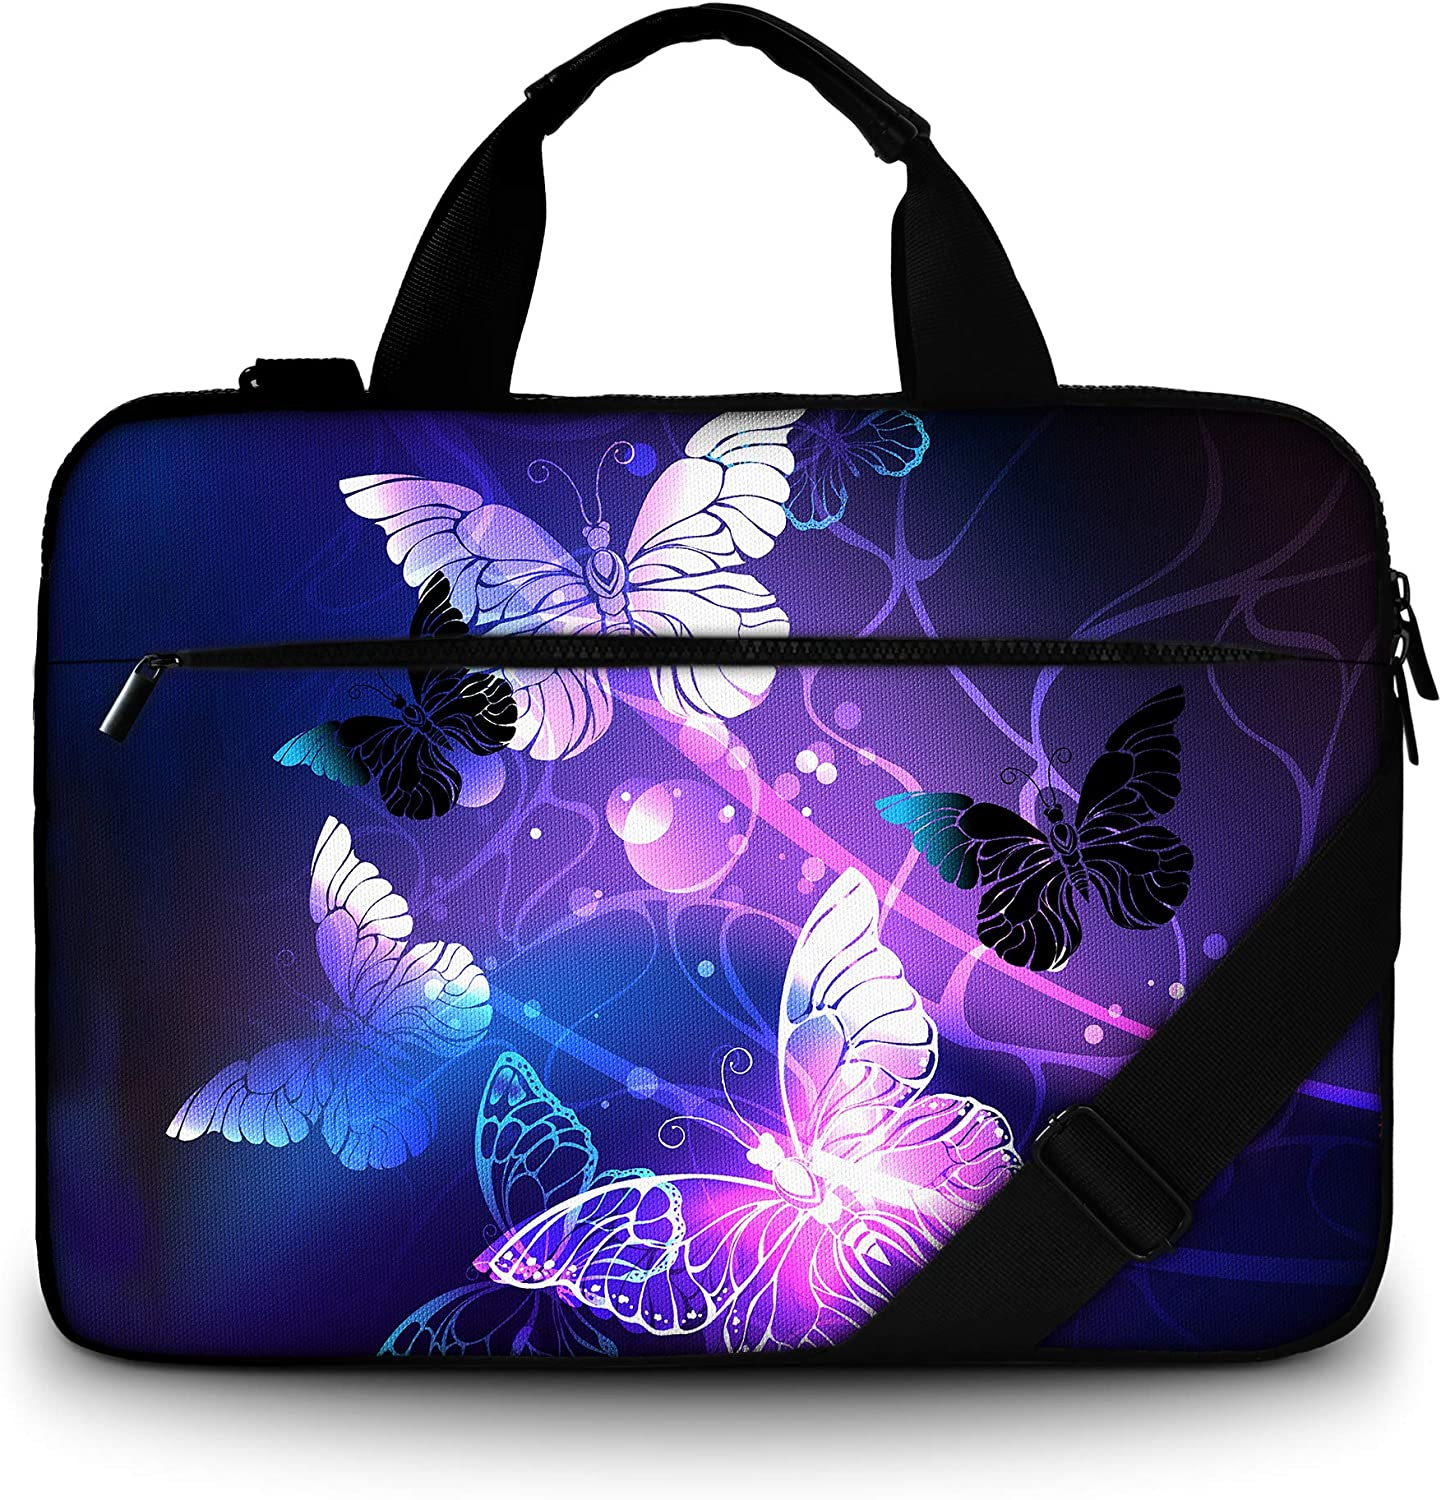 RICHEN Canvas Laptop Shoulder Bag Compatible with 11.6/12/12.9/13 Inches Laptop Netbook,Protective Canvas Carrying Handbag Briefcase Sleeve Case Cover with Side Handle (11-13 inch, White Butterflies)